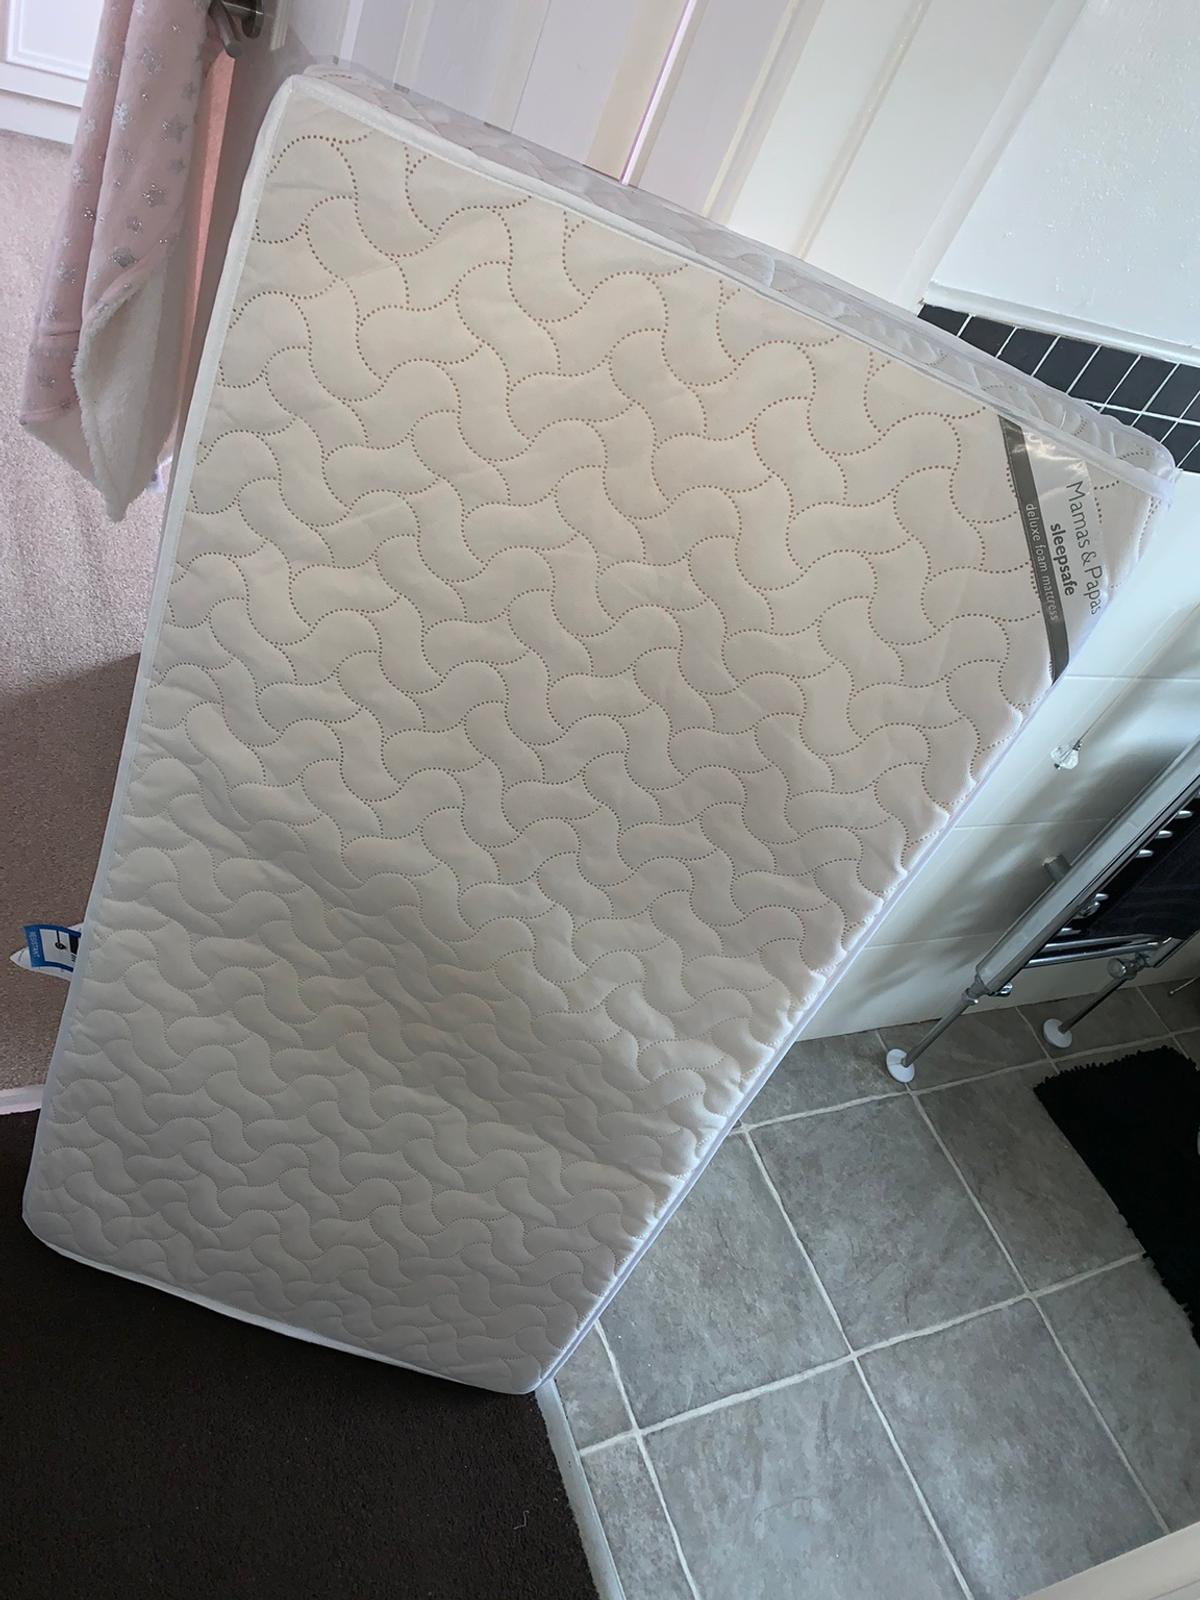 Mamas and papas cot mattress. Delux foam, used but in excellent condition. Not a mark on it. Smoke and pet free home. Collection only